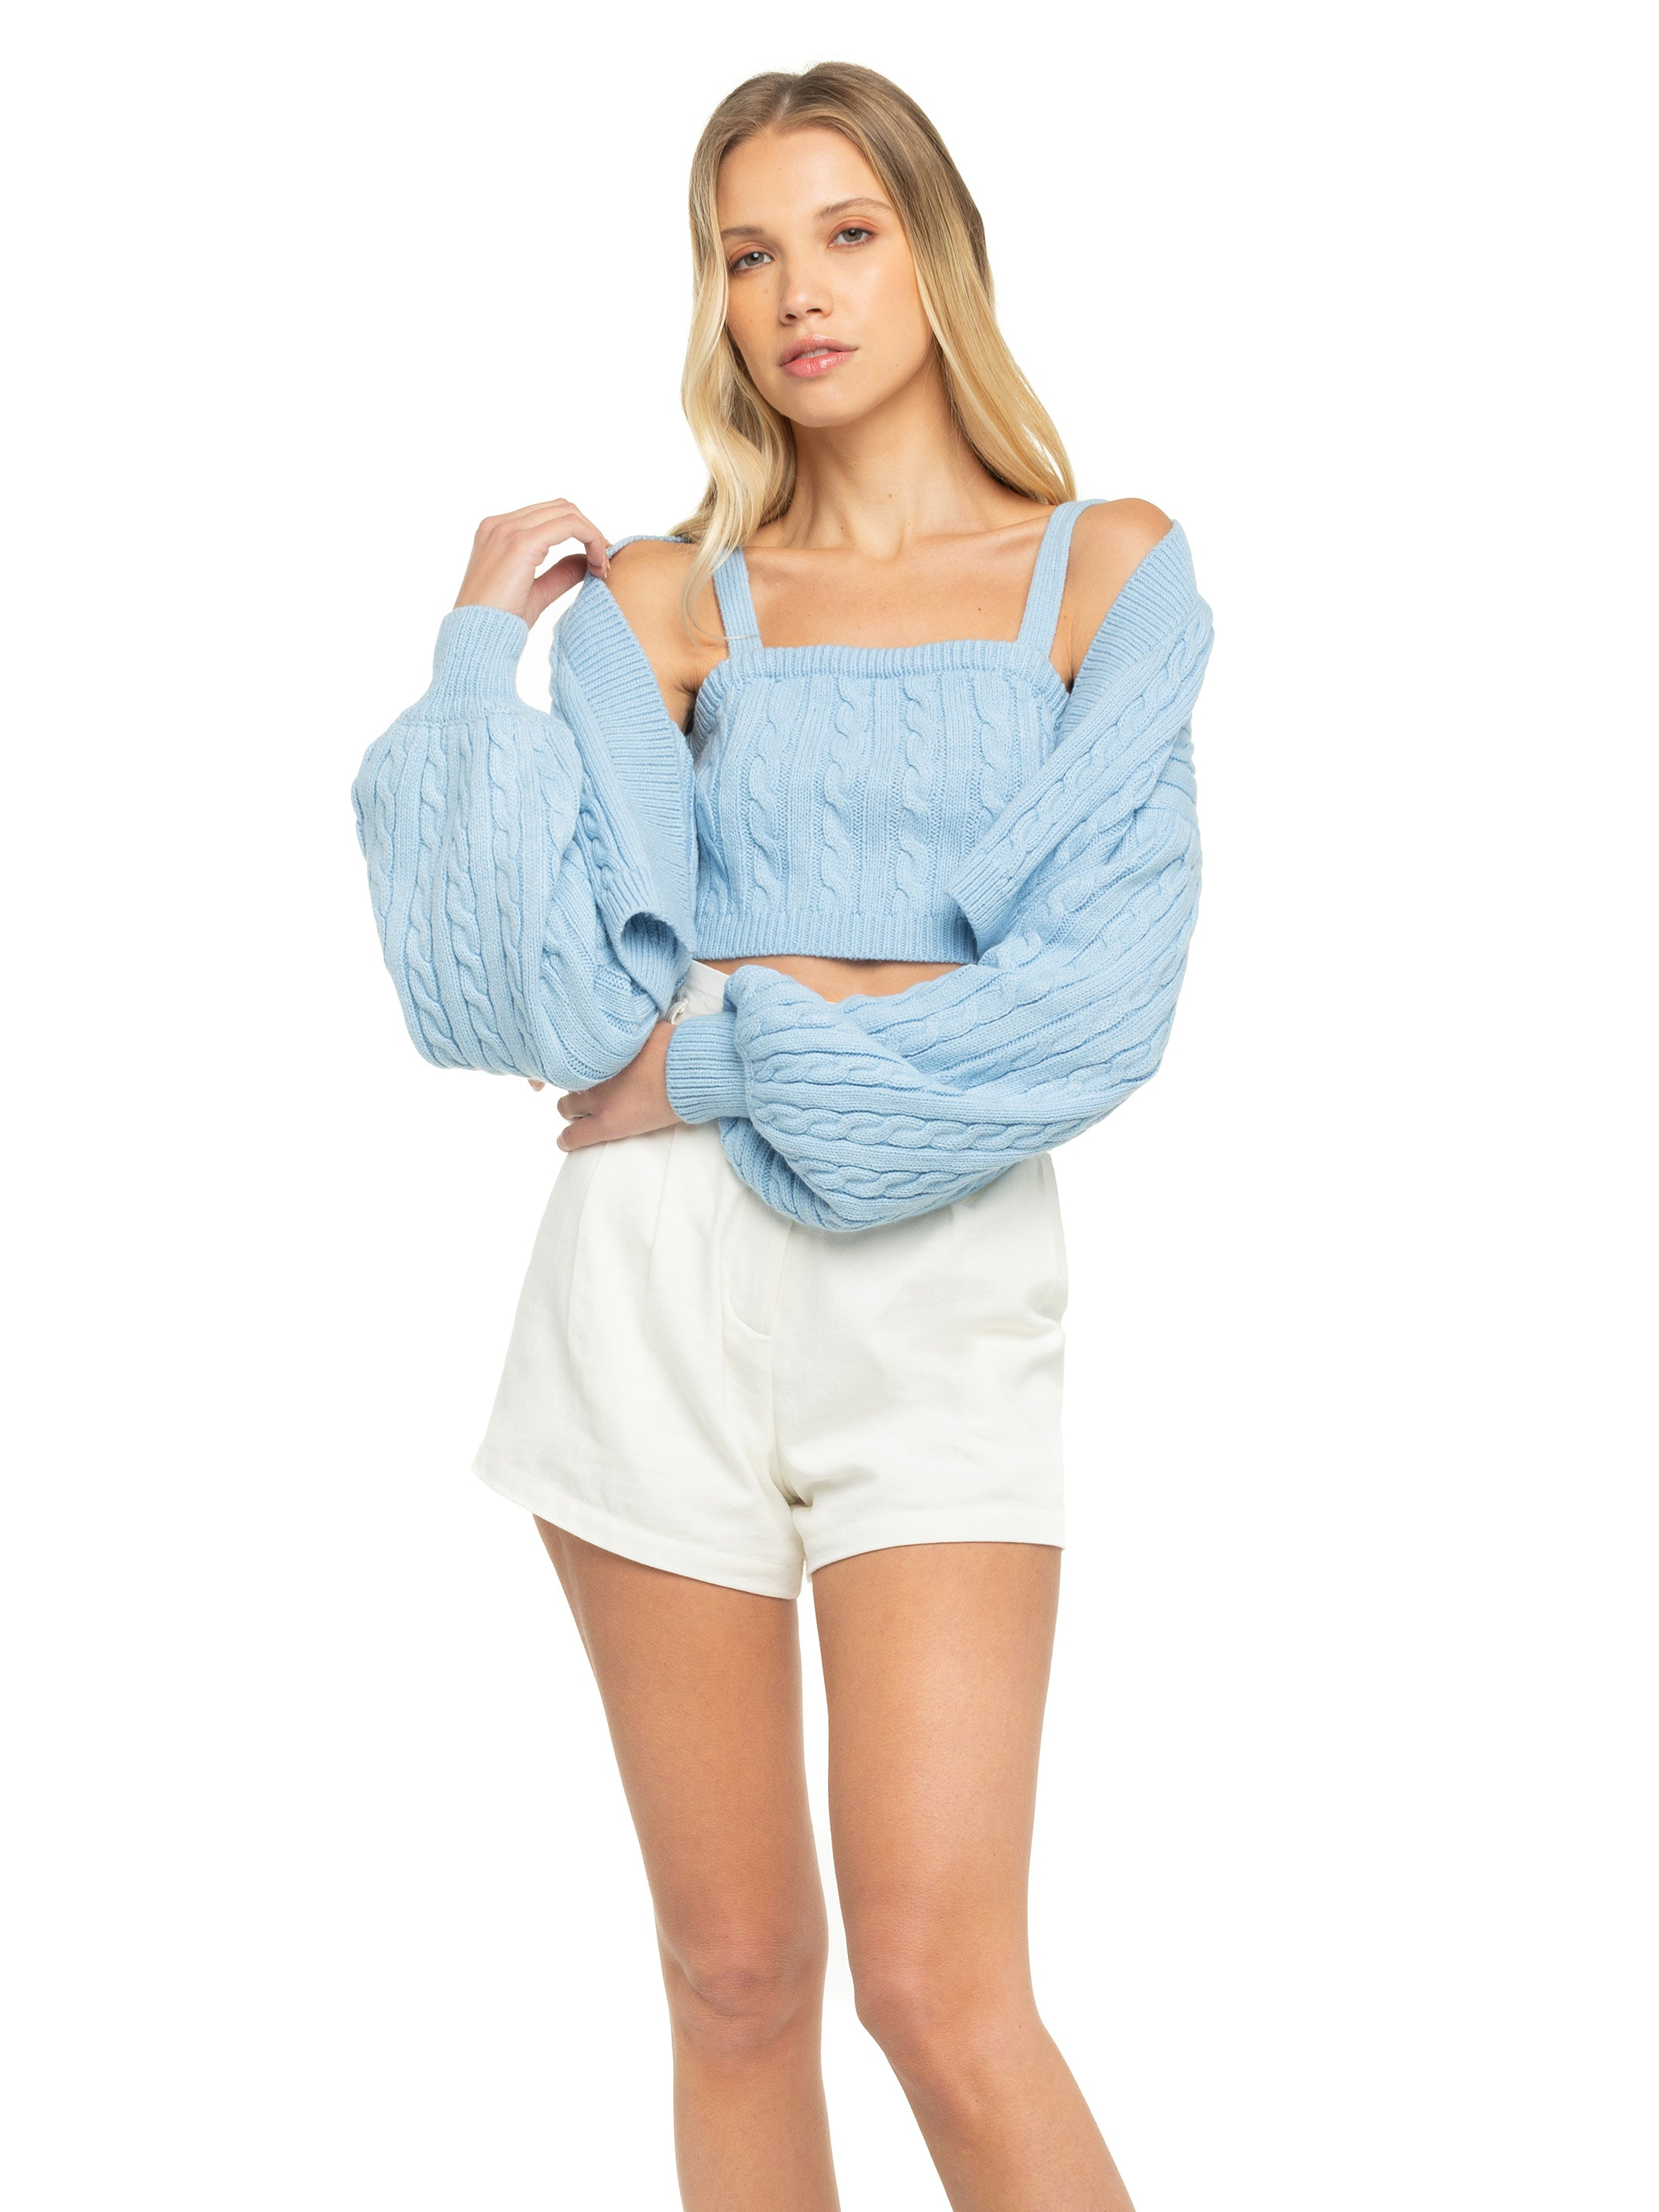 Charlotte Cropped Cardigan Set